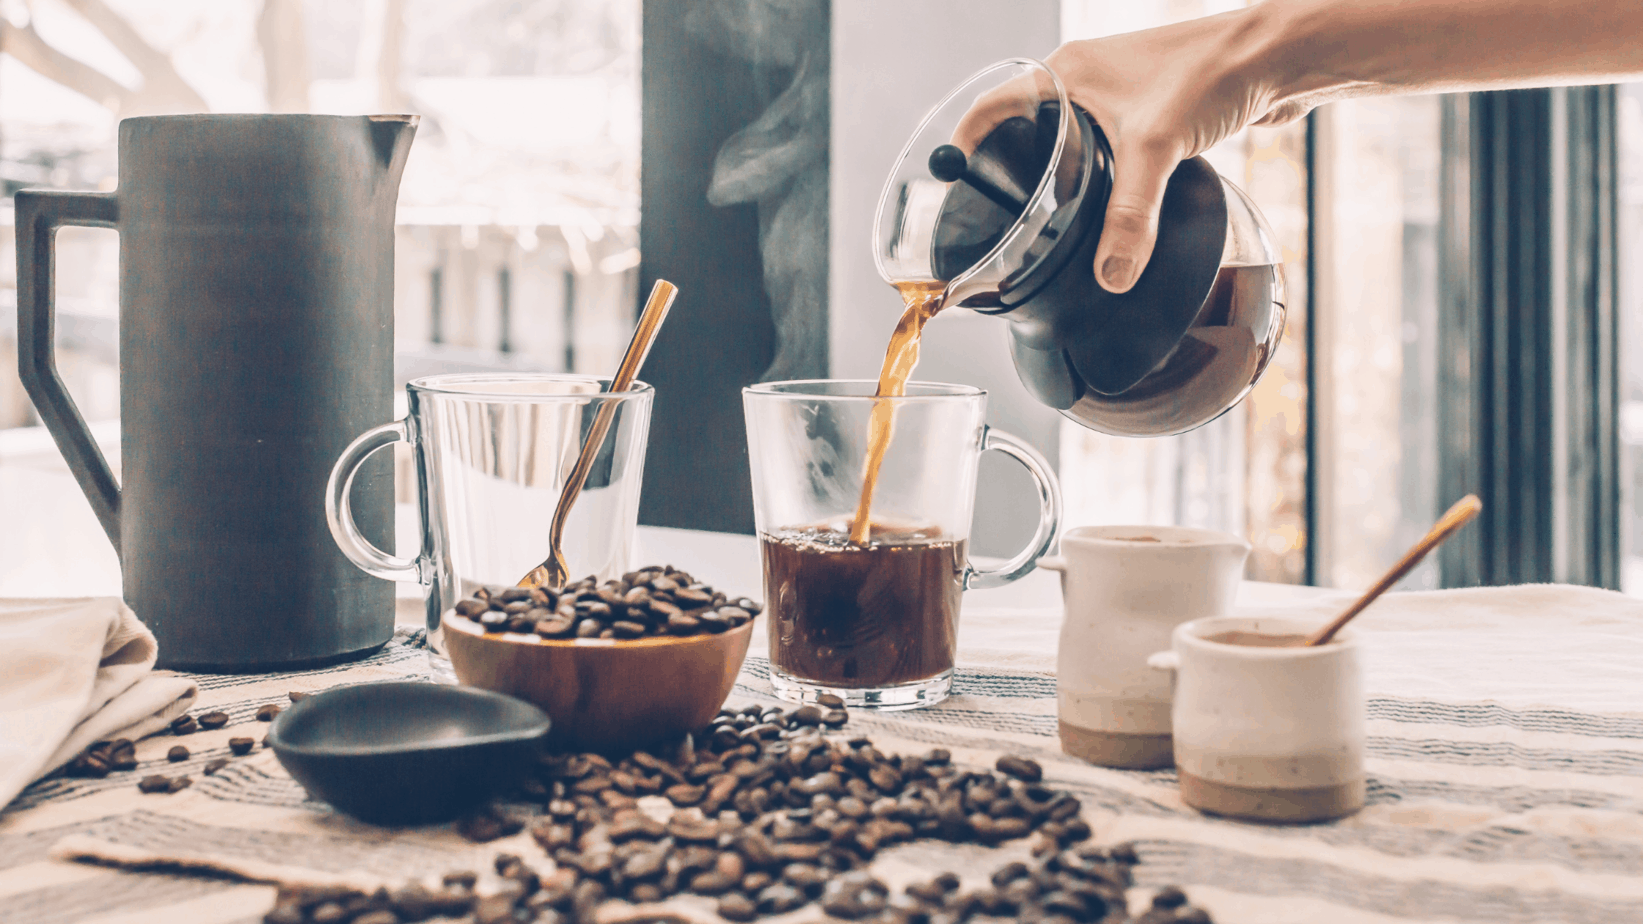 15 Coffee Hacks That Will Change Your Life